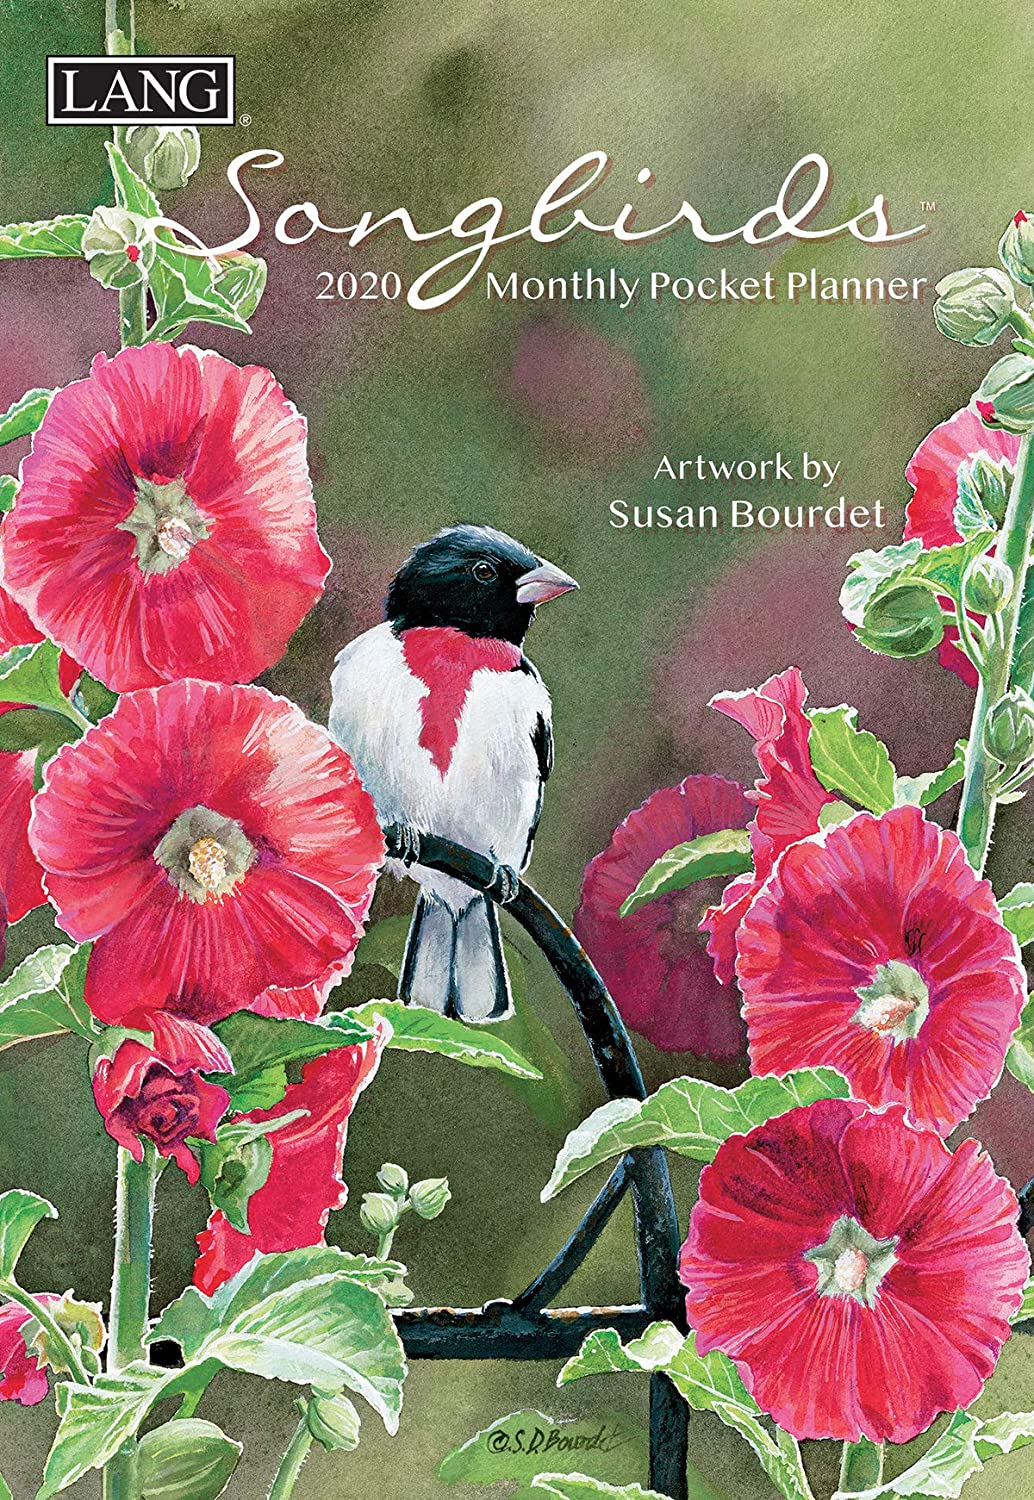 Lang Songbirds 2020 Monthly Pocket Planner (20991003167)